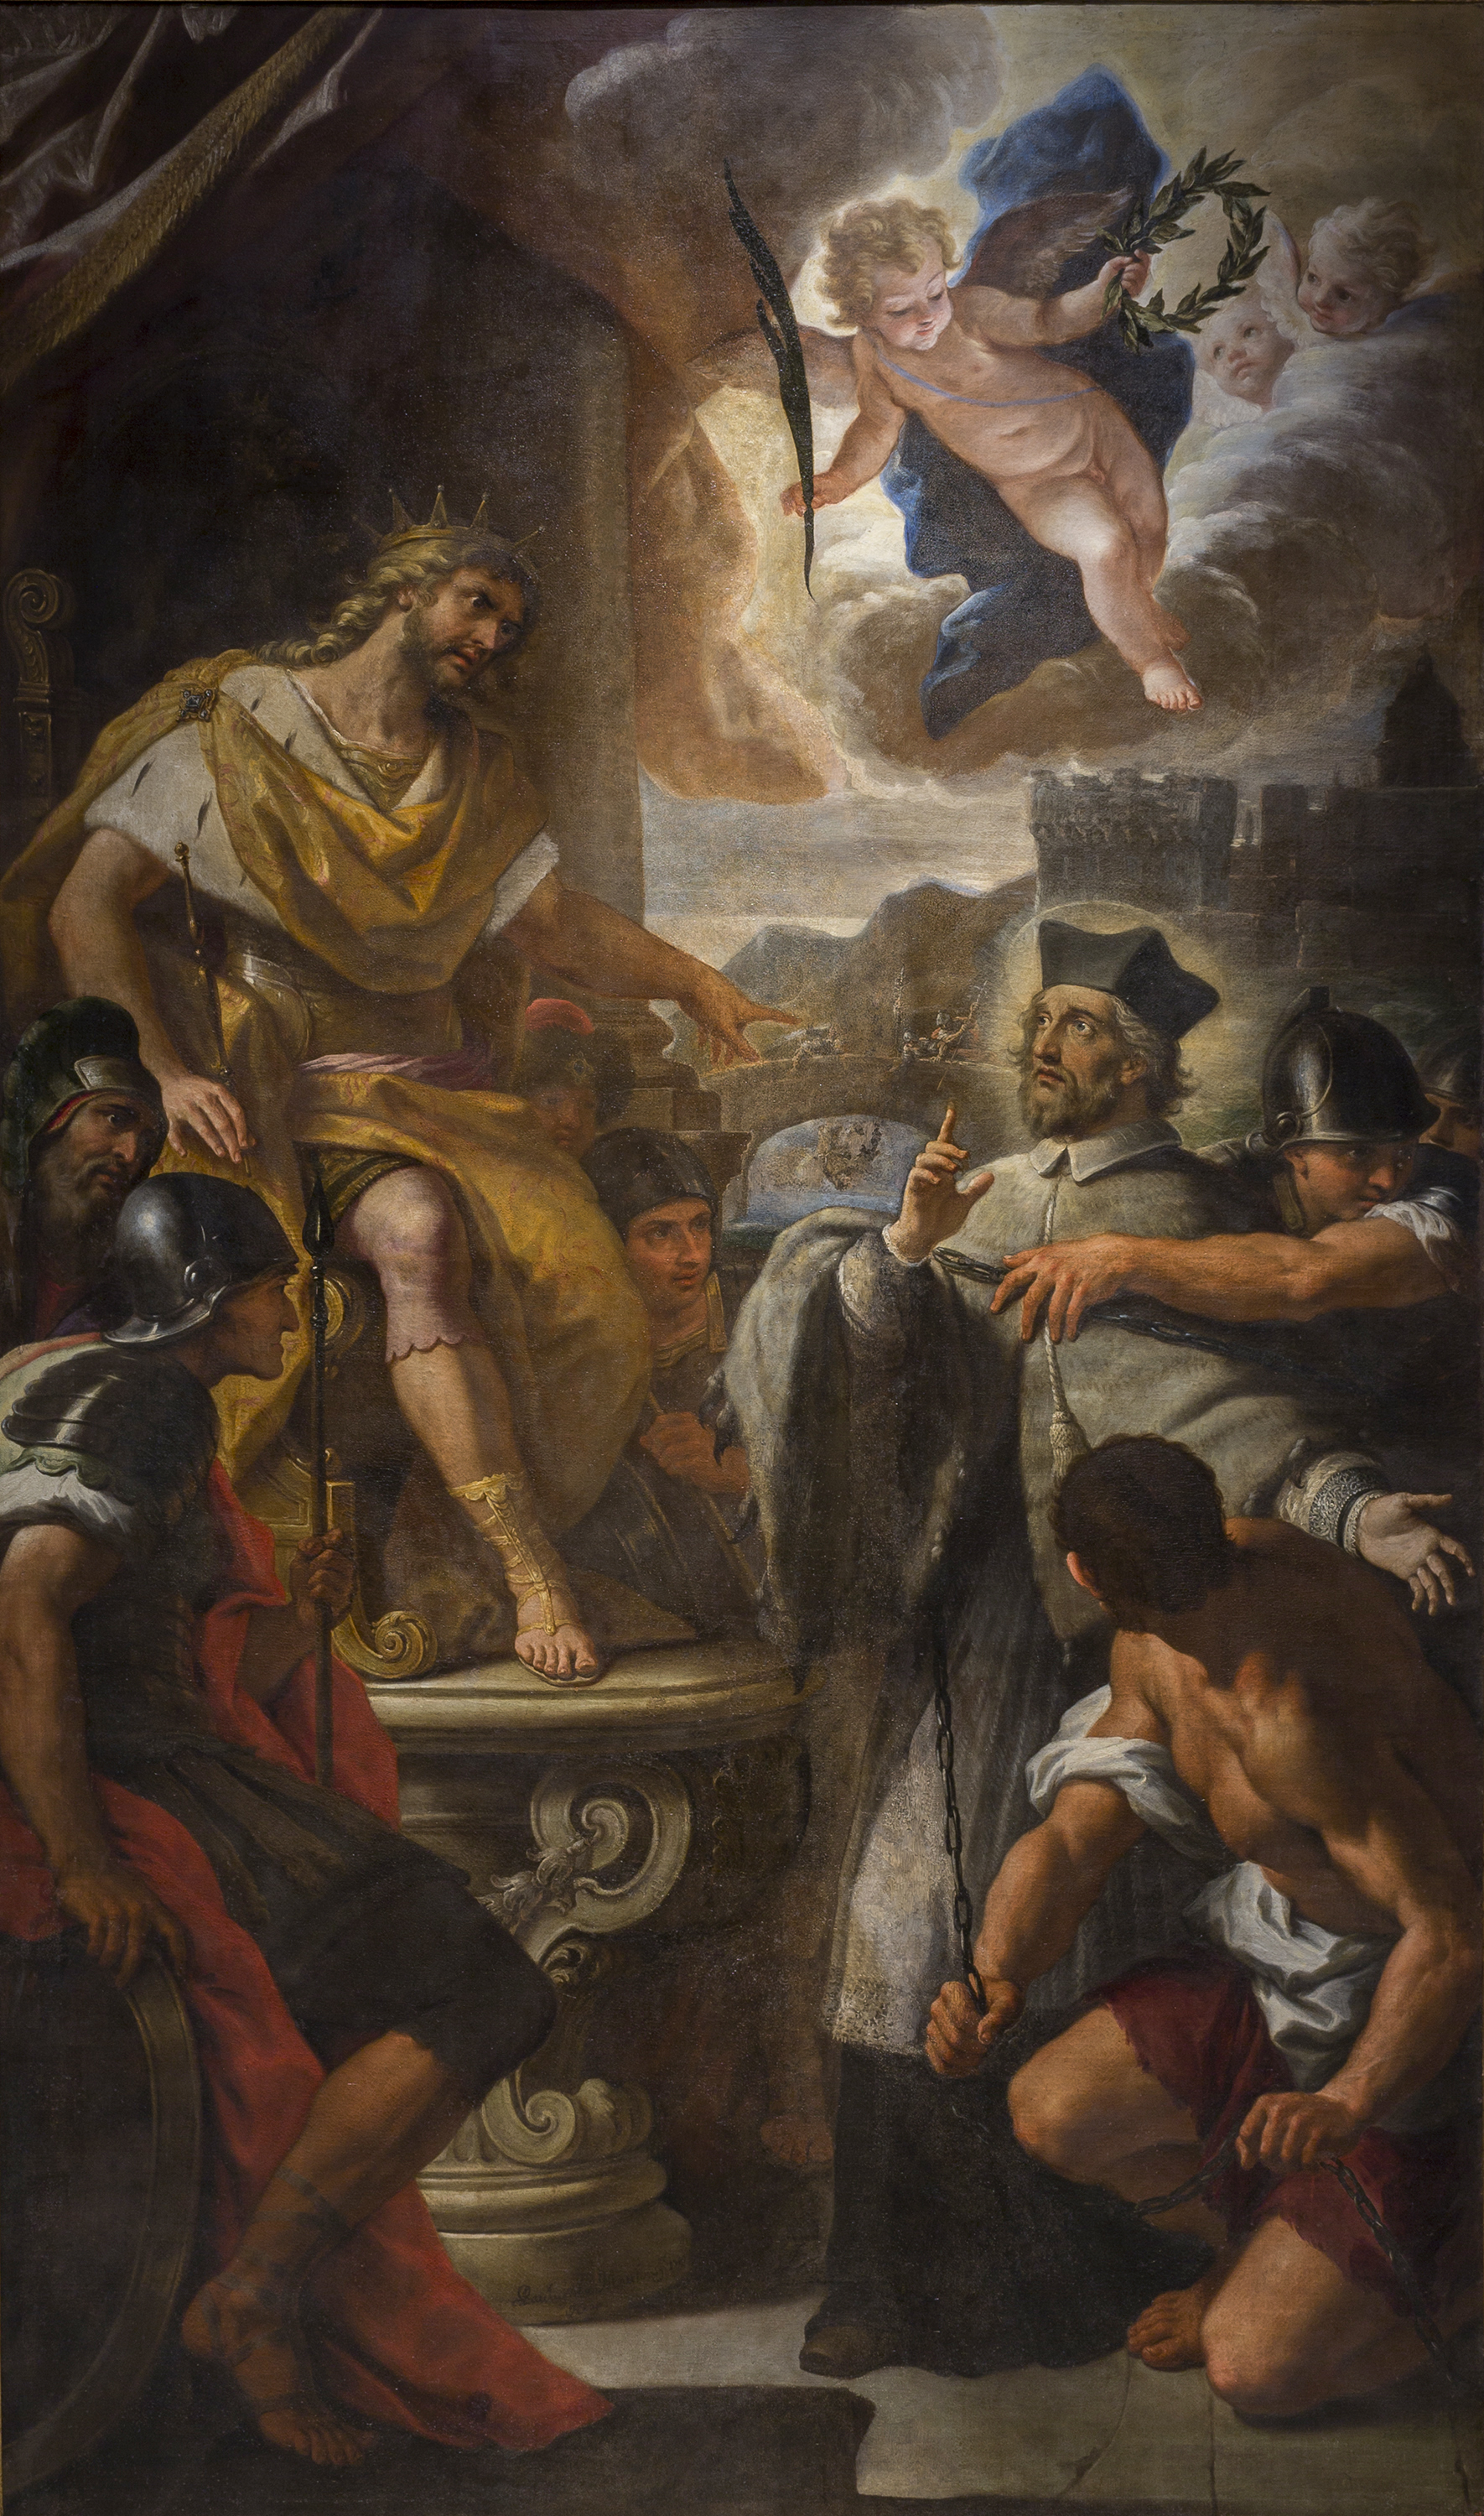 Paolo de Matteis - King Wenceslaus IV Sentences Saint John of Nepomuk - 1710